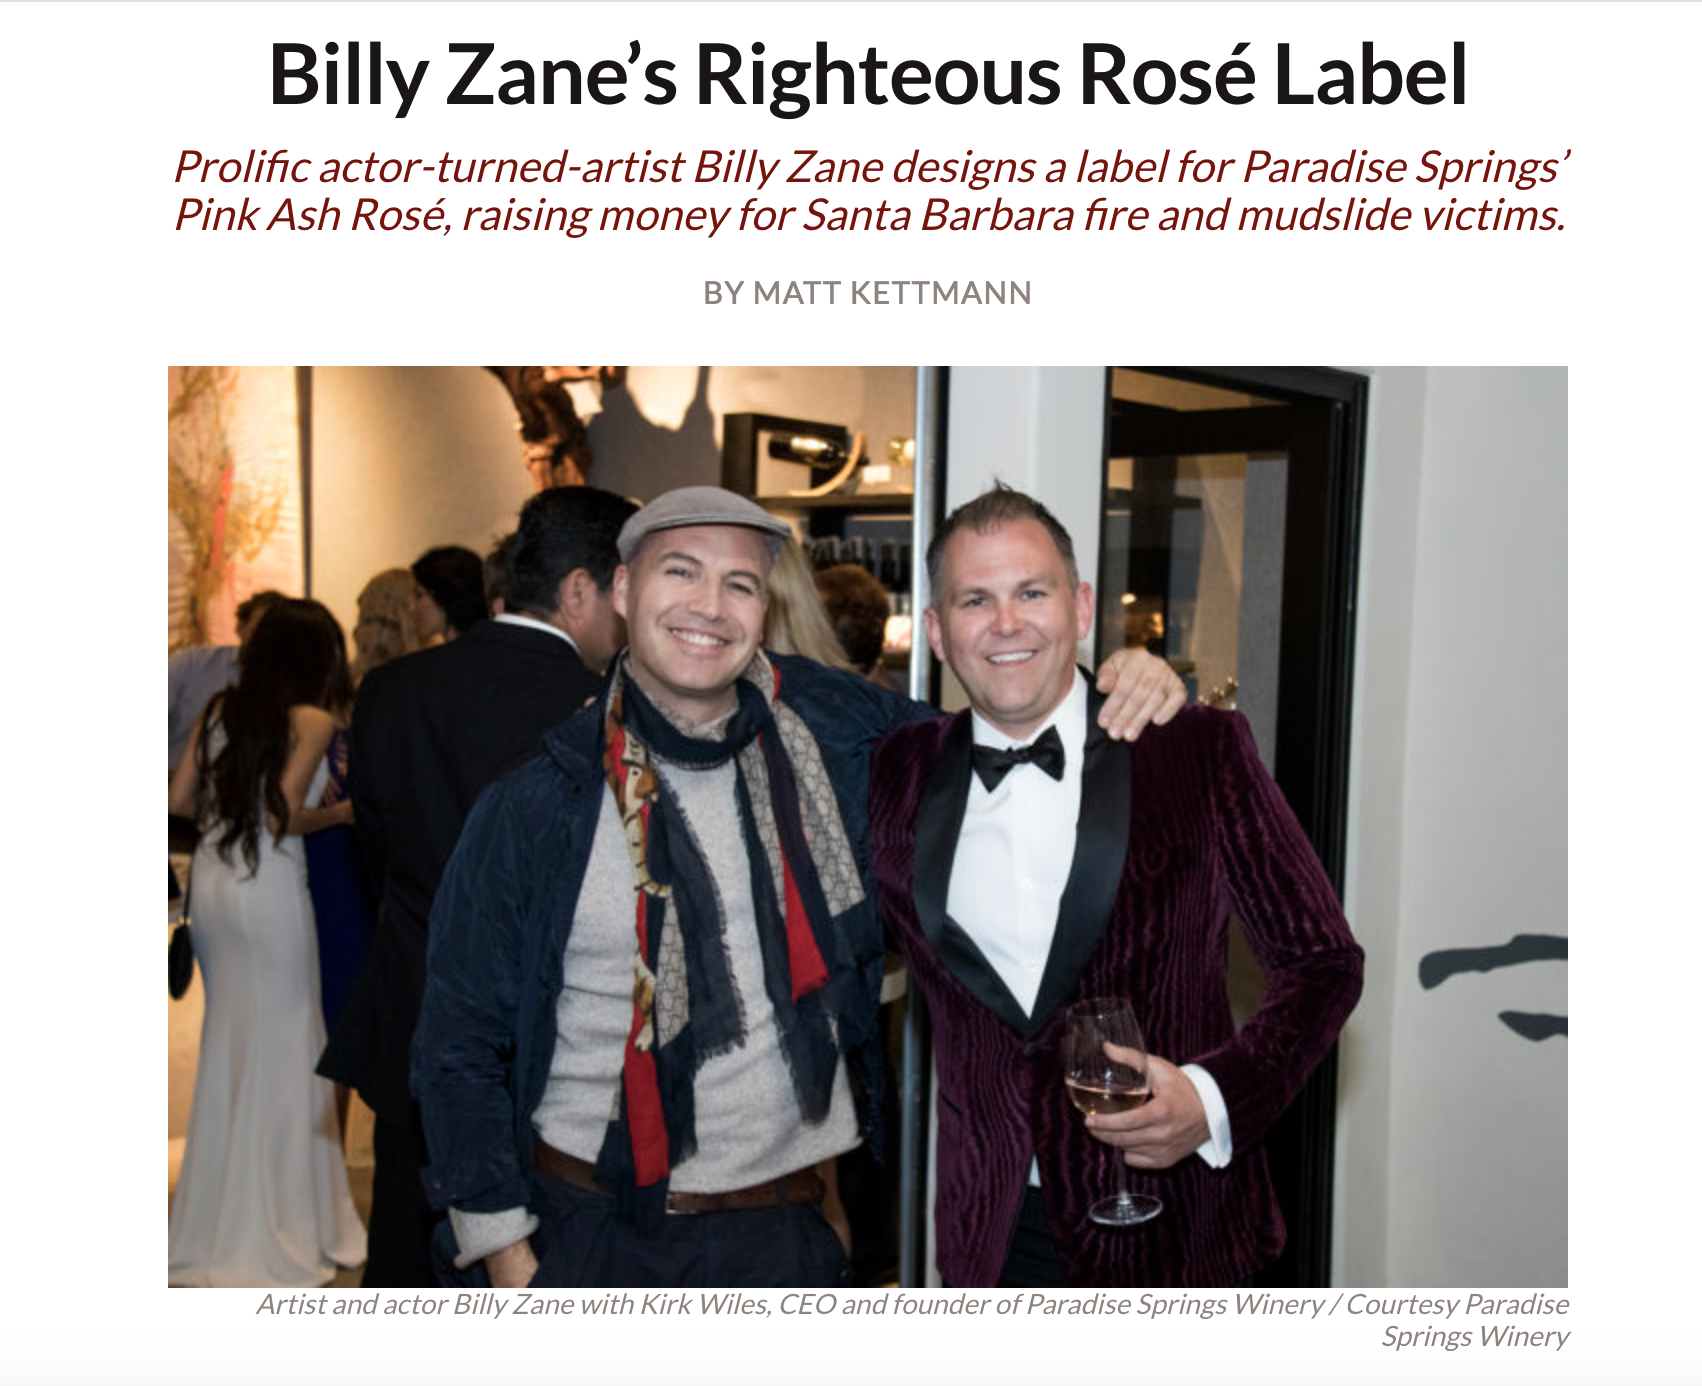 https://www.winemag.com/2018/07/20/billy-zane-rose/